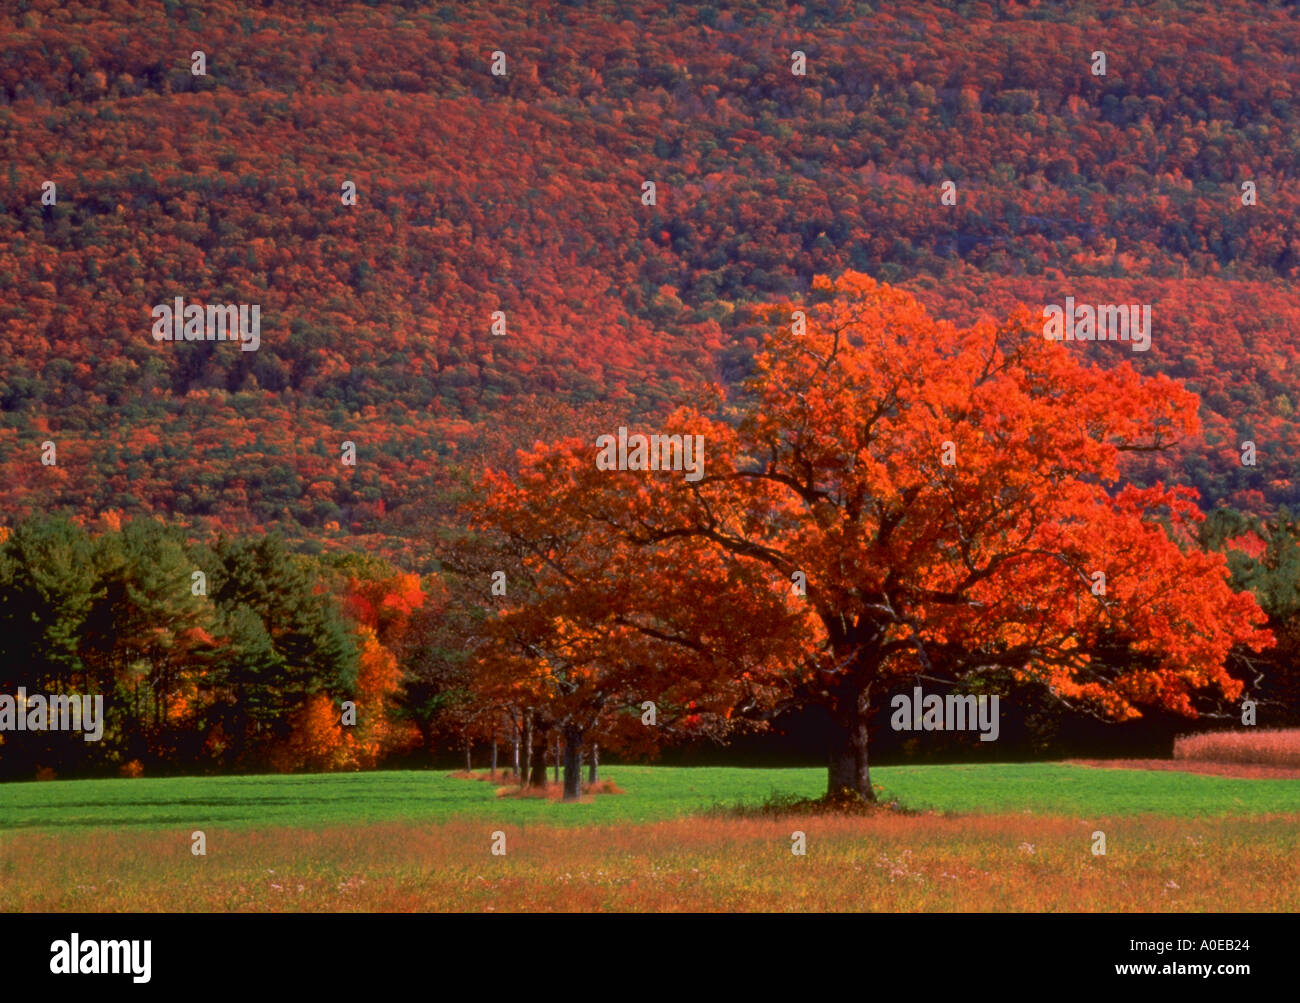 Lone tree with red fall foliage in a field with hillside